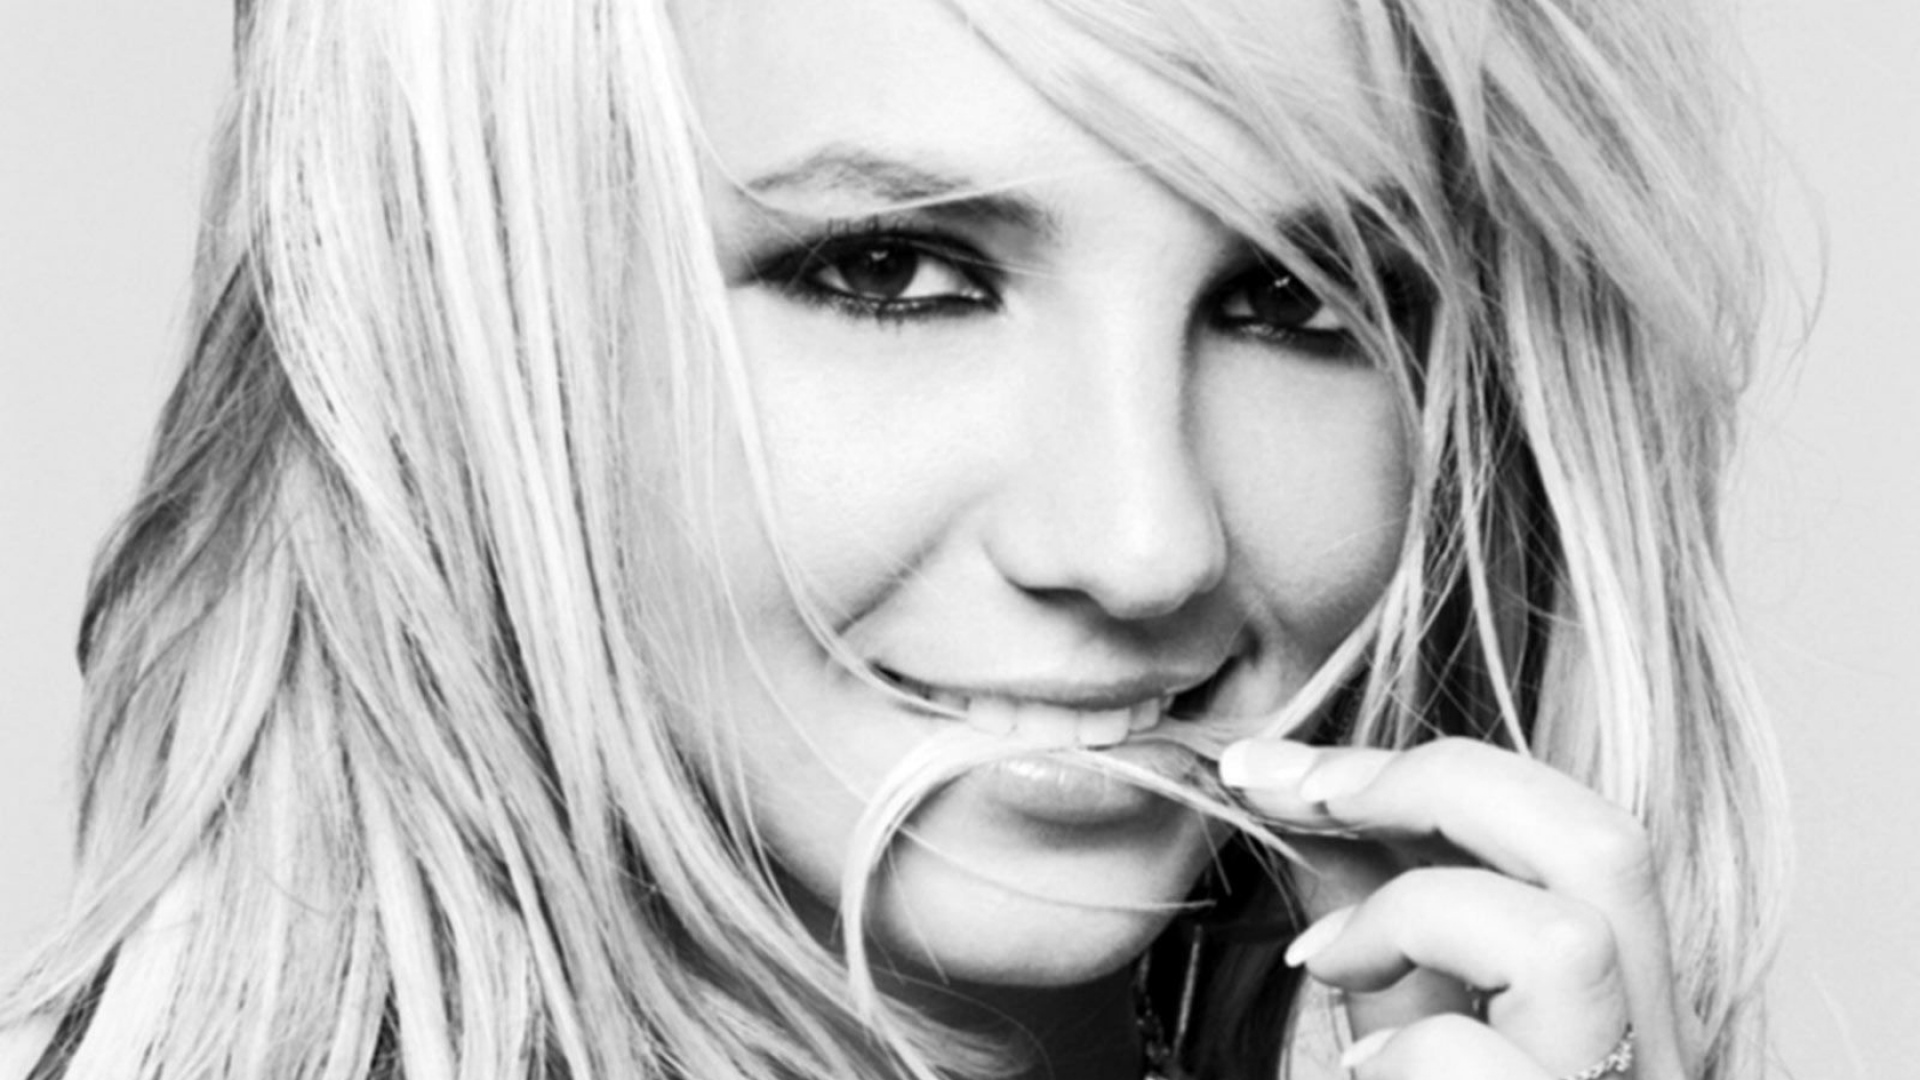 Download Wallpaper 1920x1080 Britney Spears, Smile, Hair